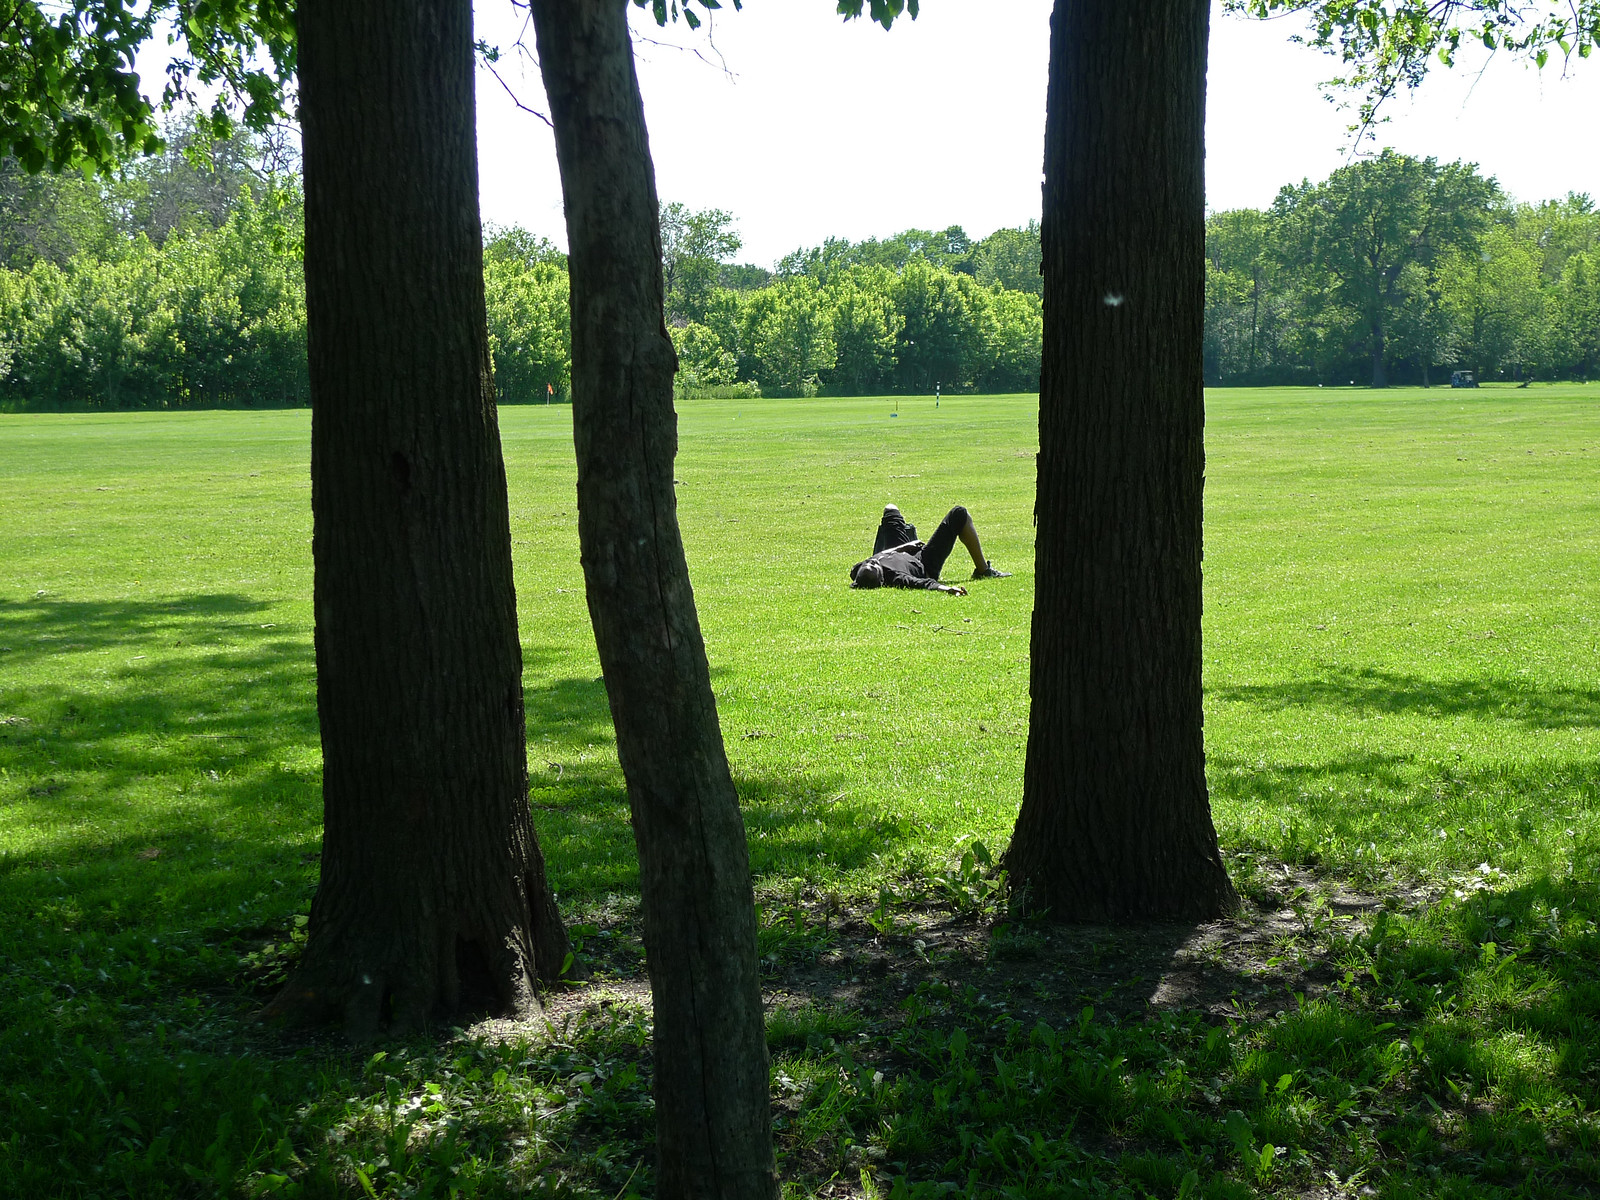 napping in the rough (Columbus Park Golf Course) | by find myself a city (1001 Afternoons in Chicago)